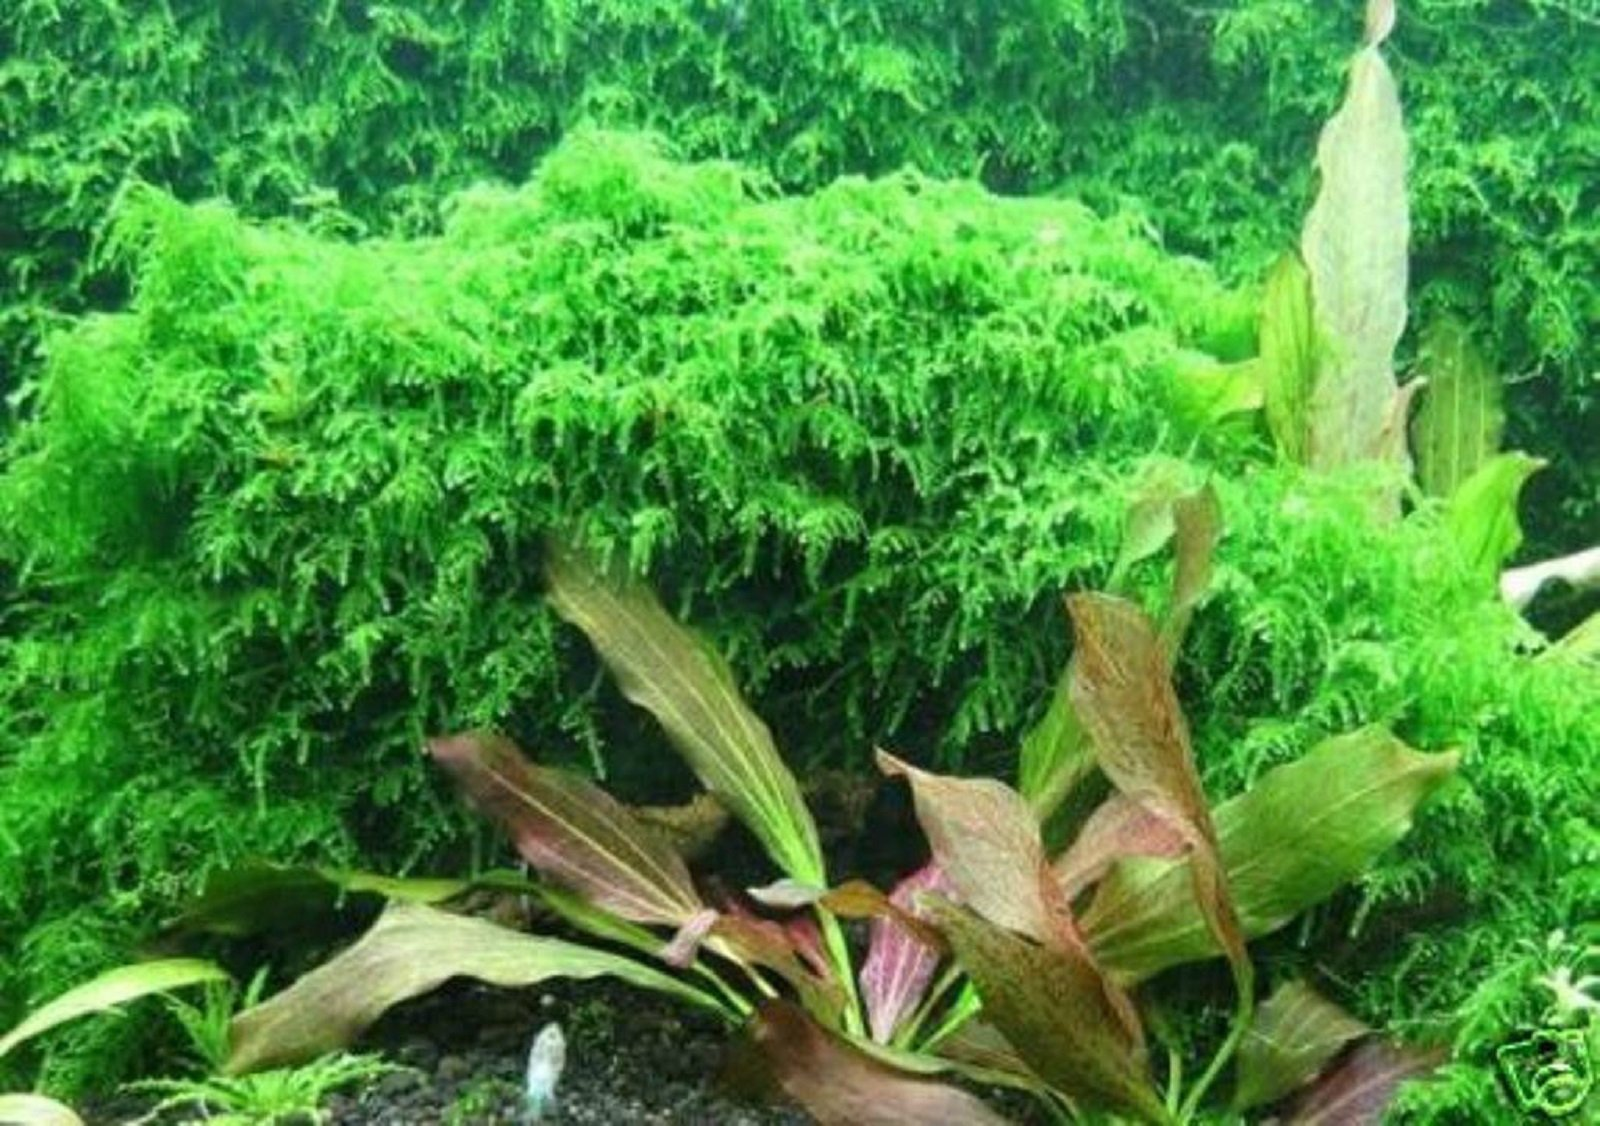 Hot Sale! Xmas Moss-Live Aquarium Brackish Water Fish Tank Plant by Polar Bear's Aquarium